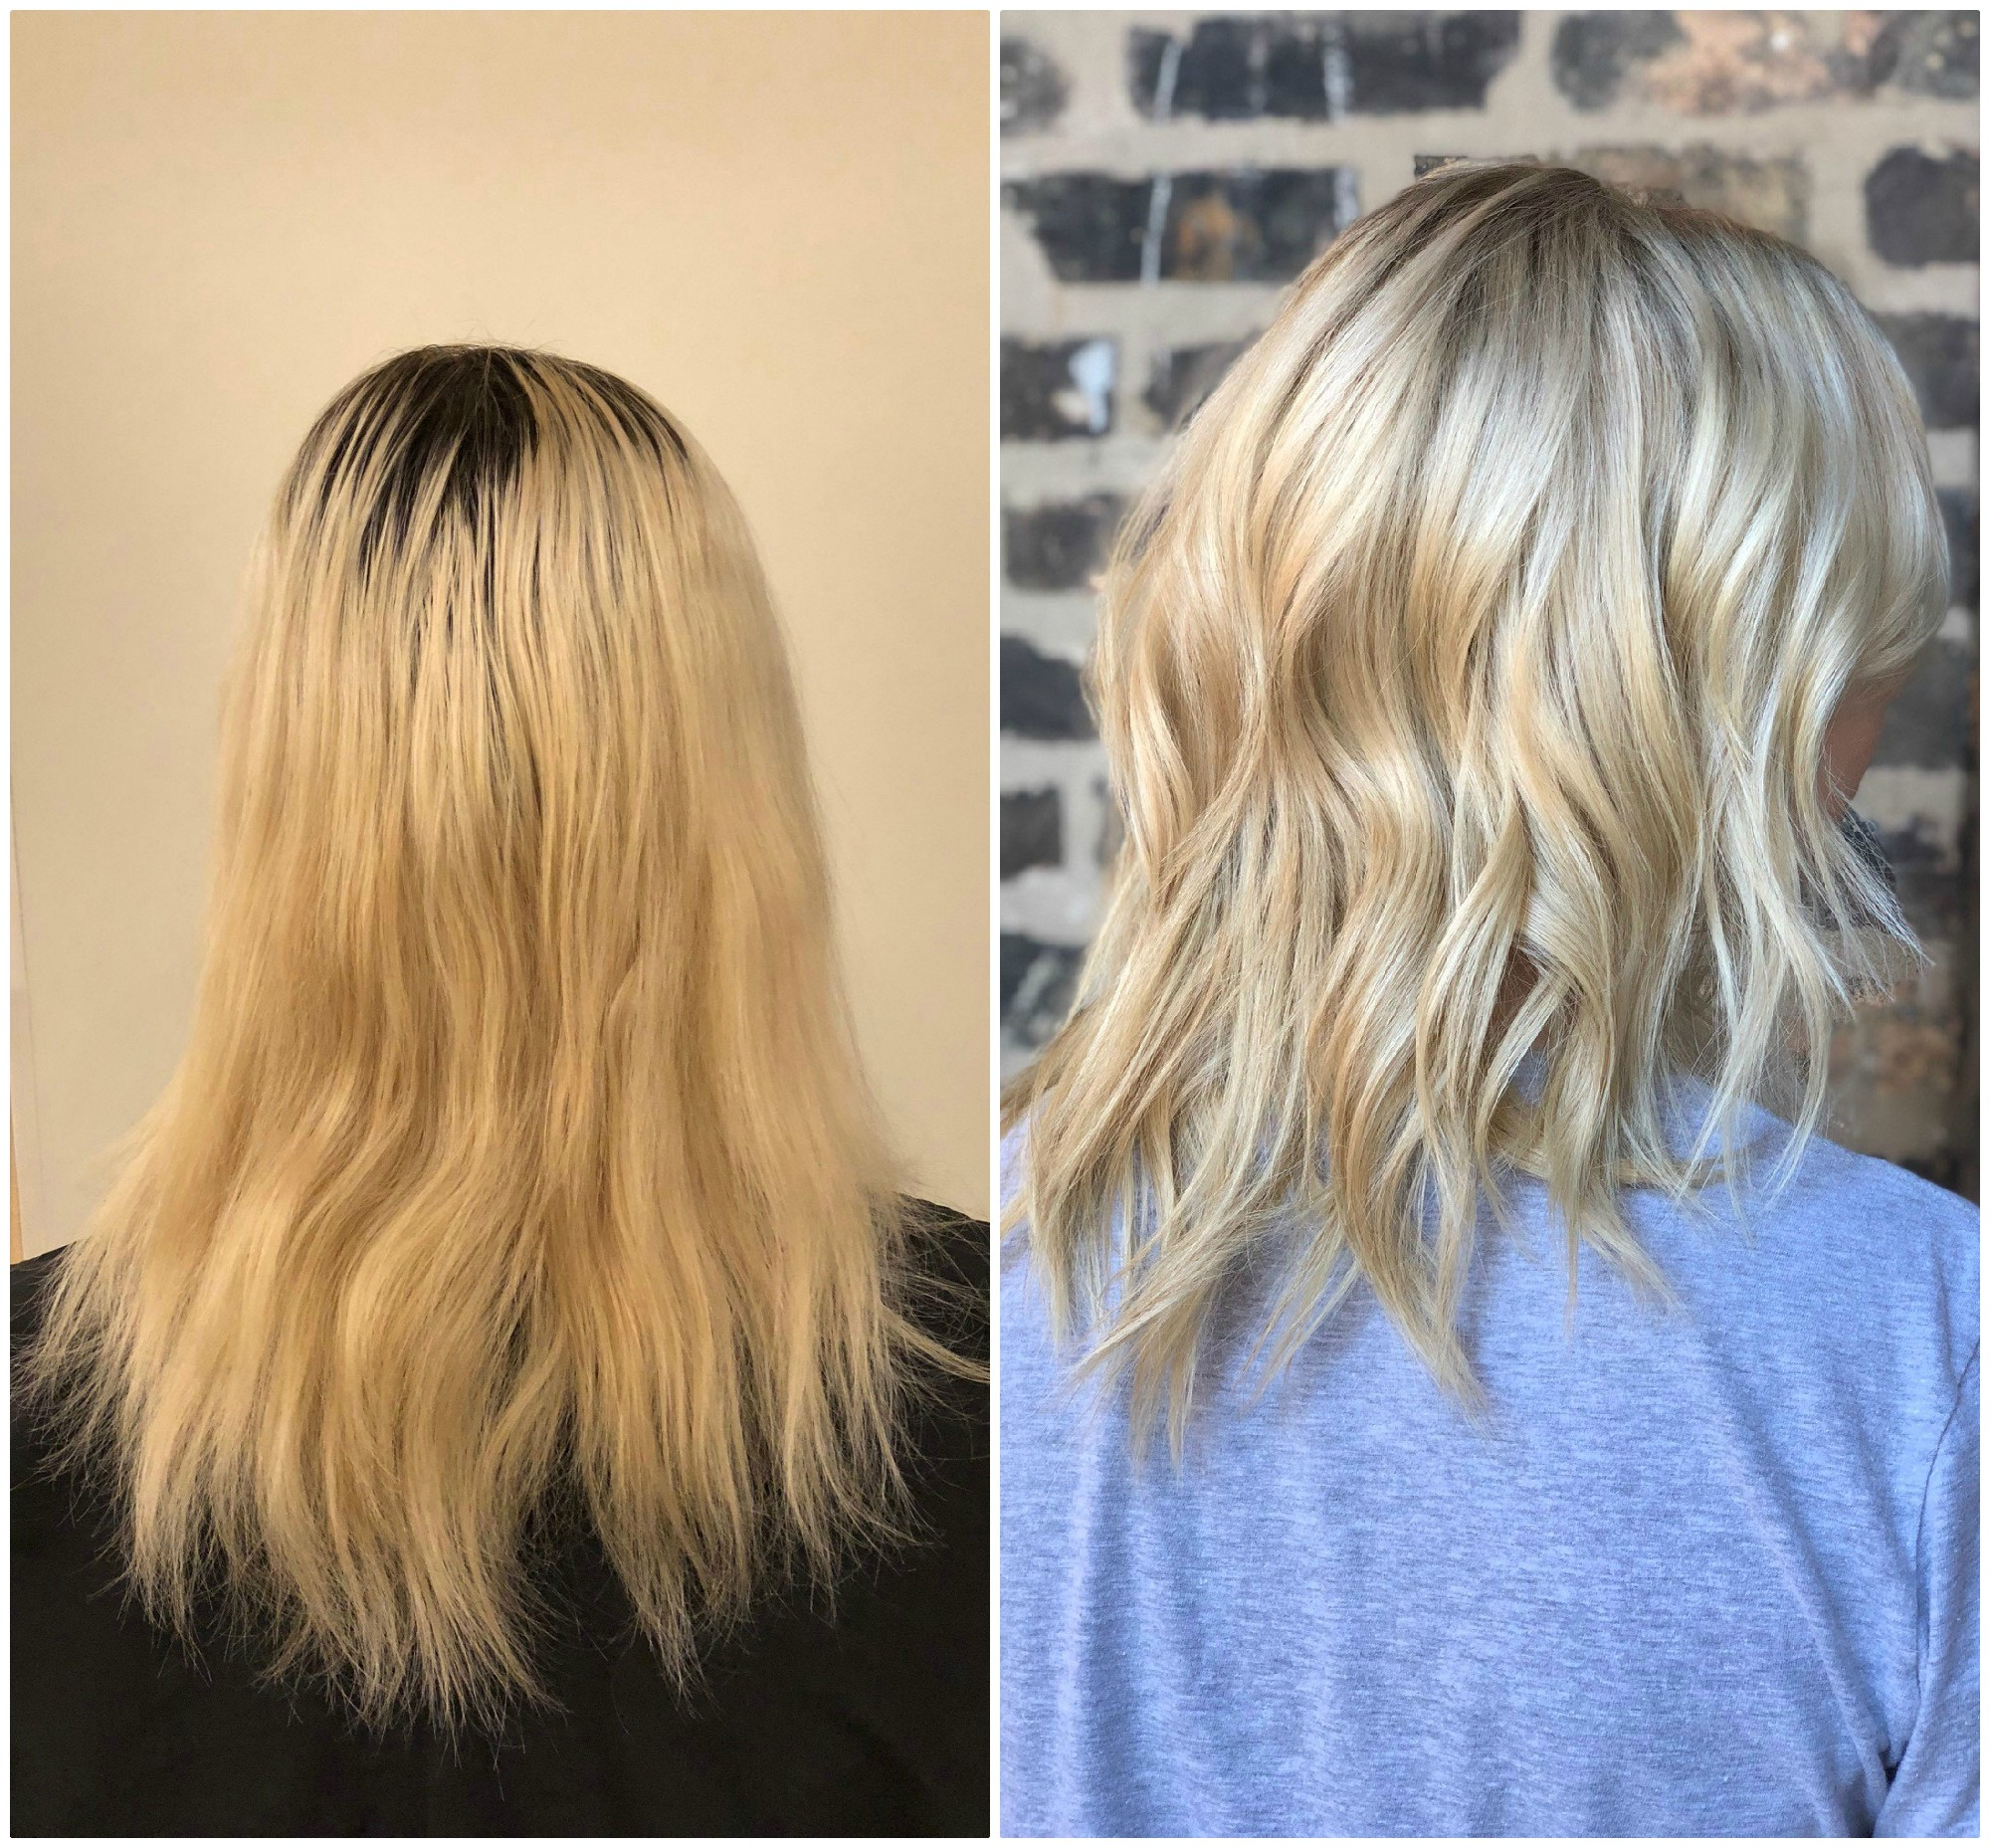 MAKEOVER: Grown-Out Platinum to Natural, Manageable Blonde